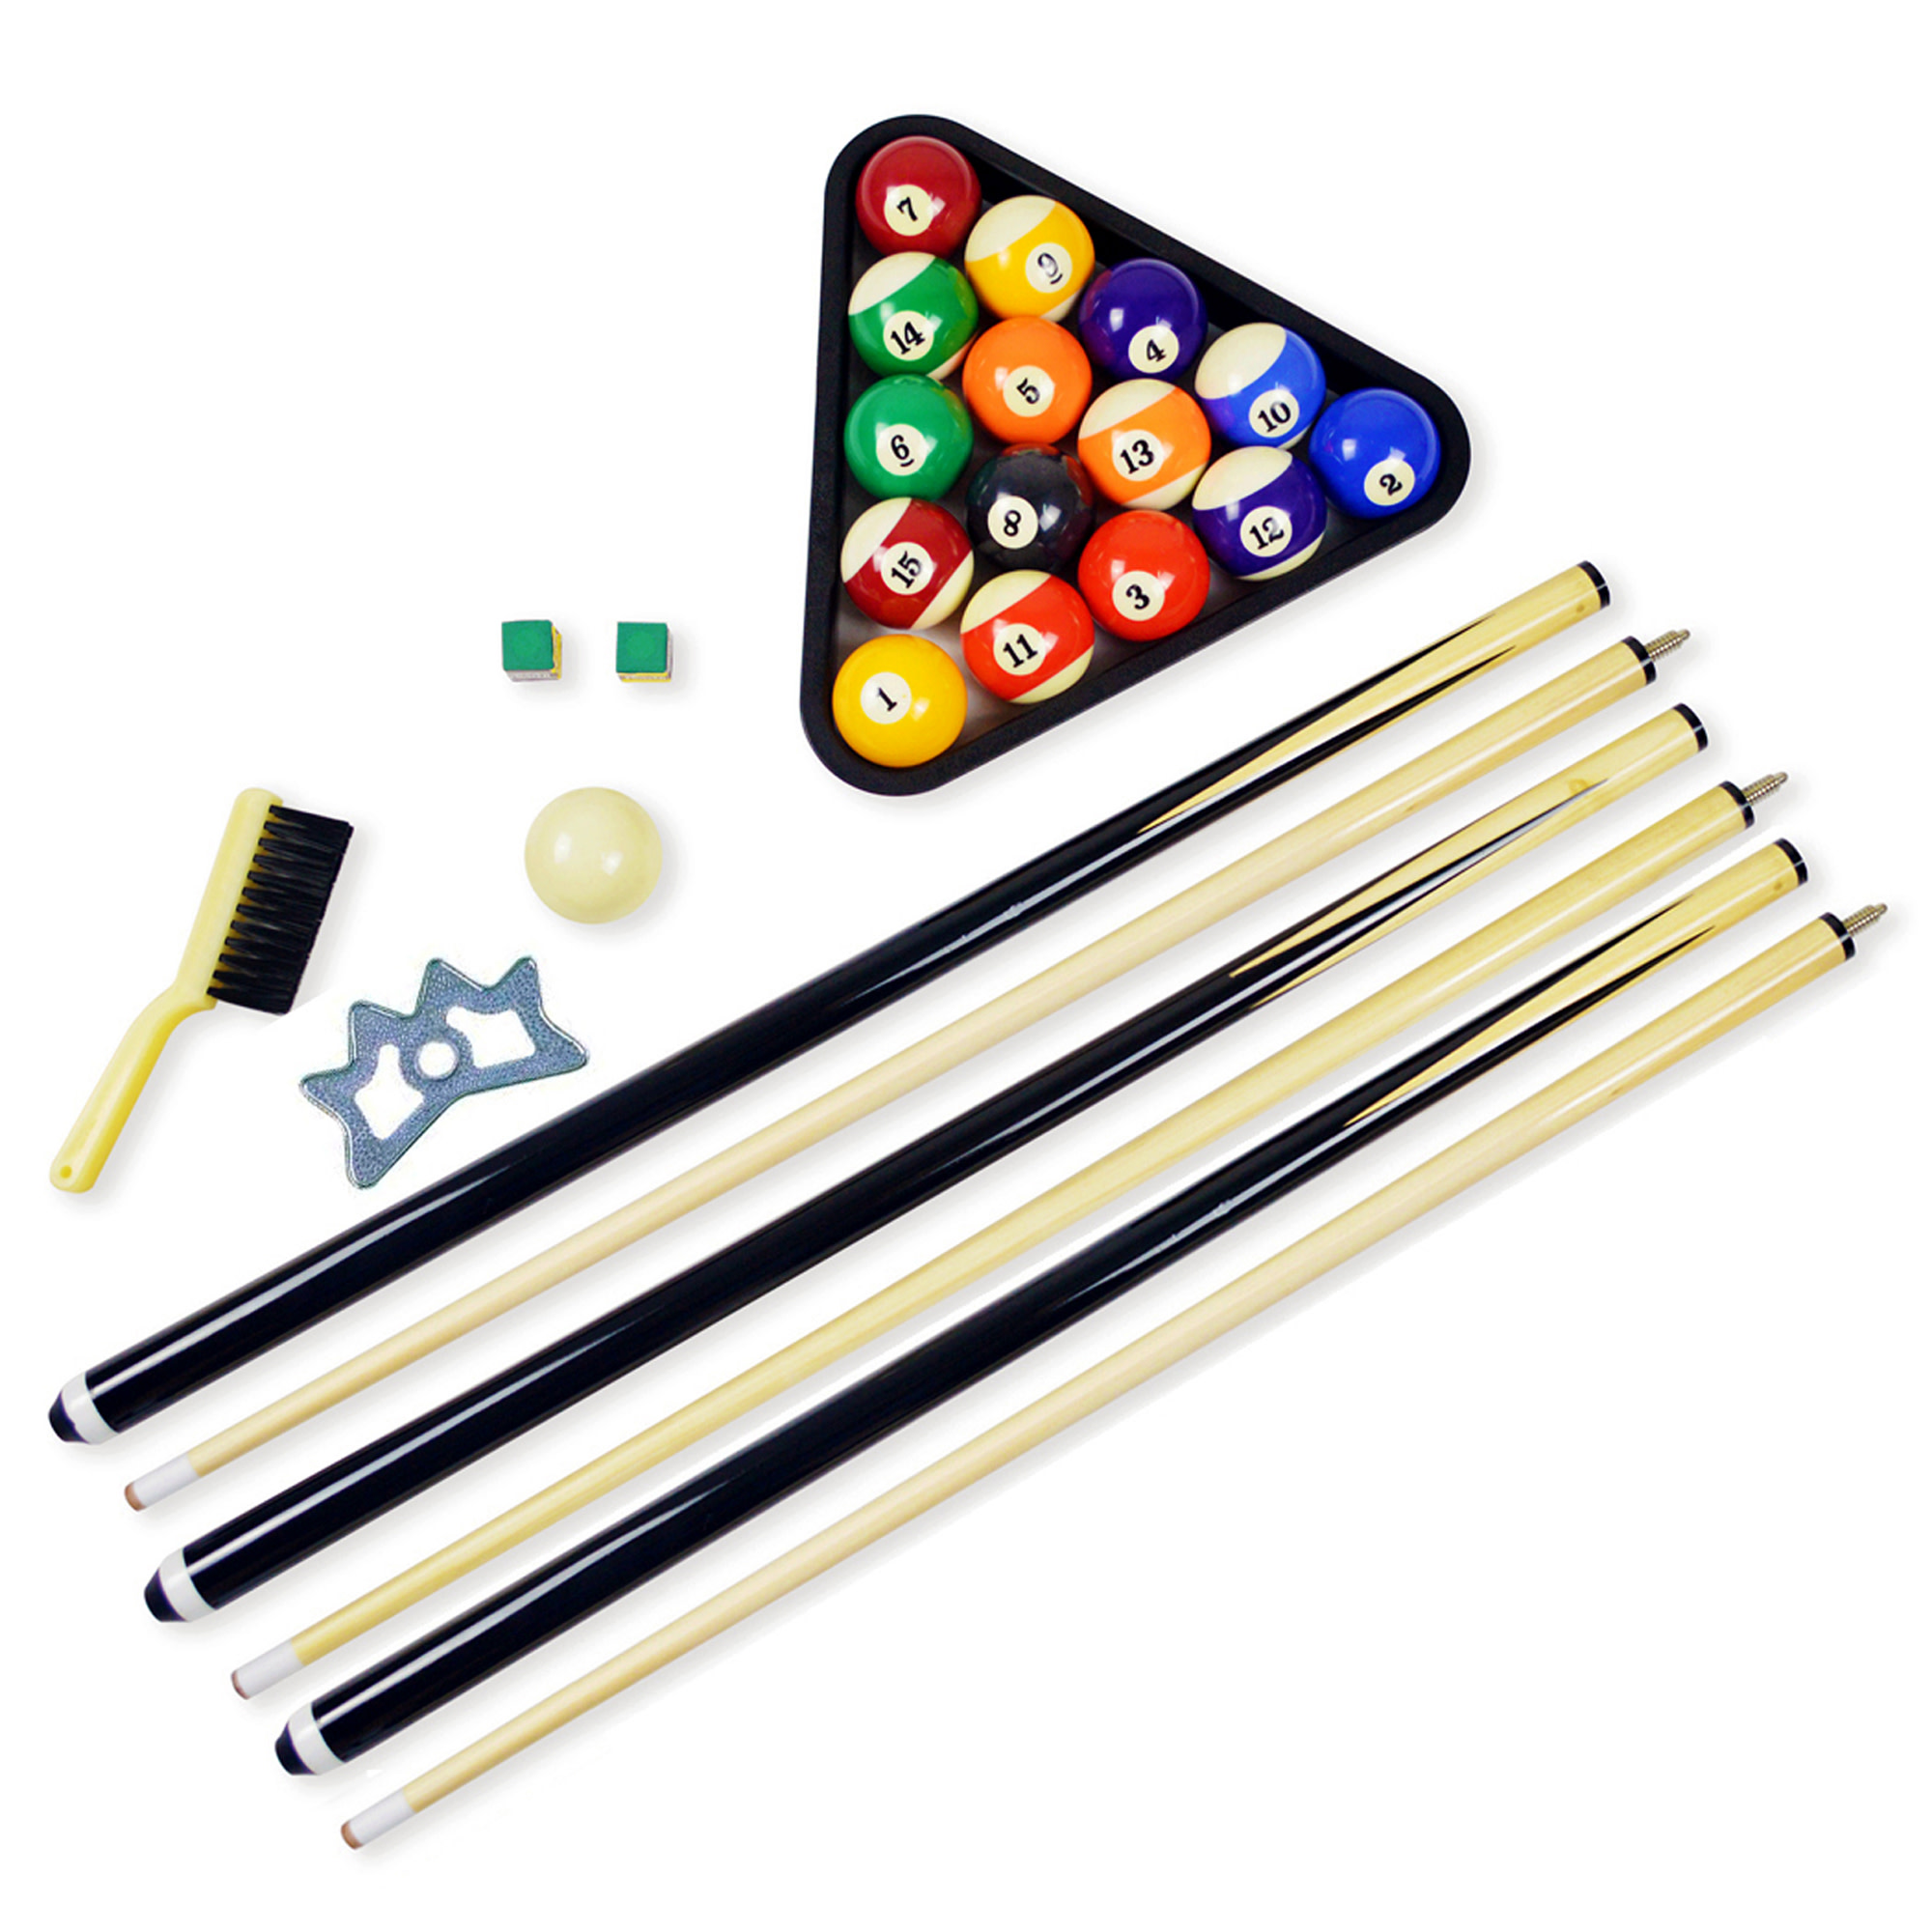 Hathaway Pool Table Billiard Accessory Kit with Cues, Rack, Chalk, Brush